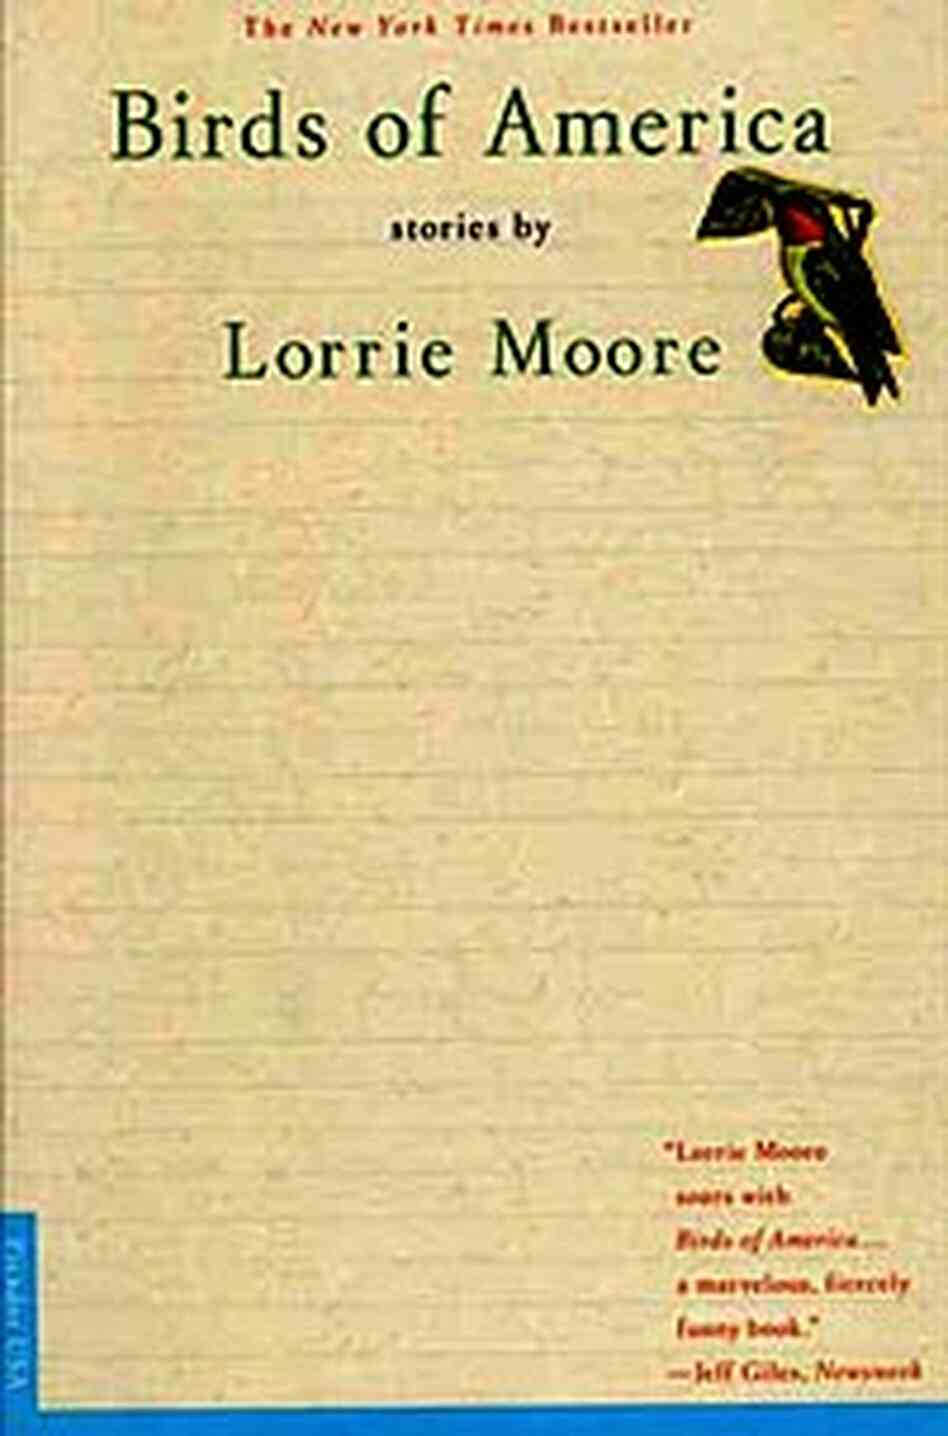 Cover of Lorrie Moore's ;Birds of America'